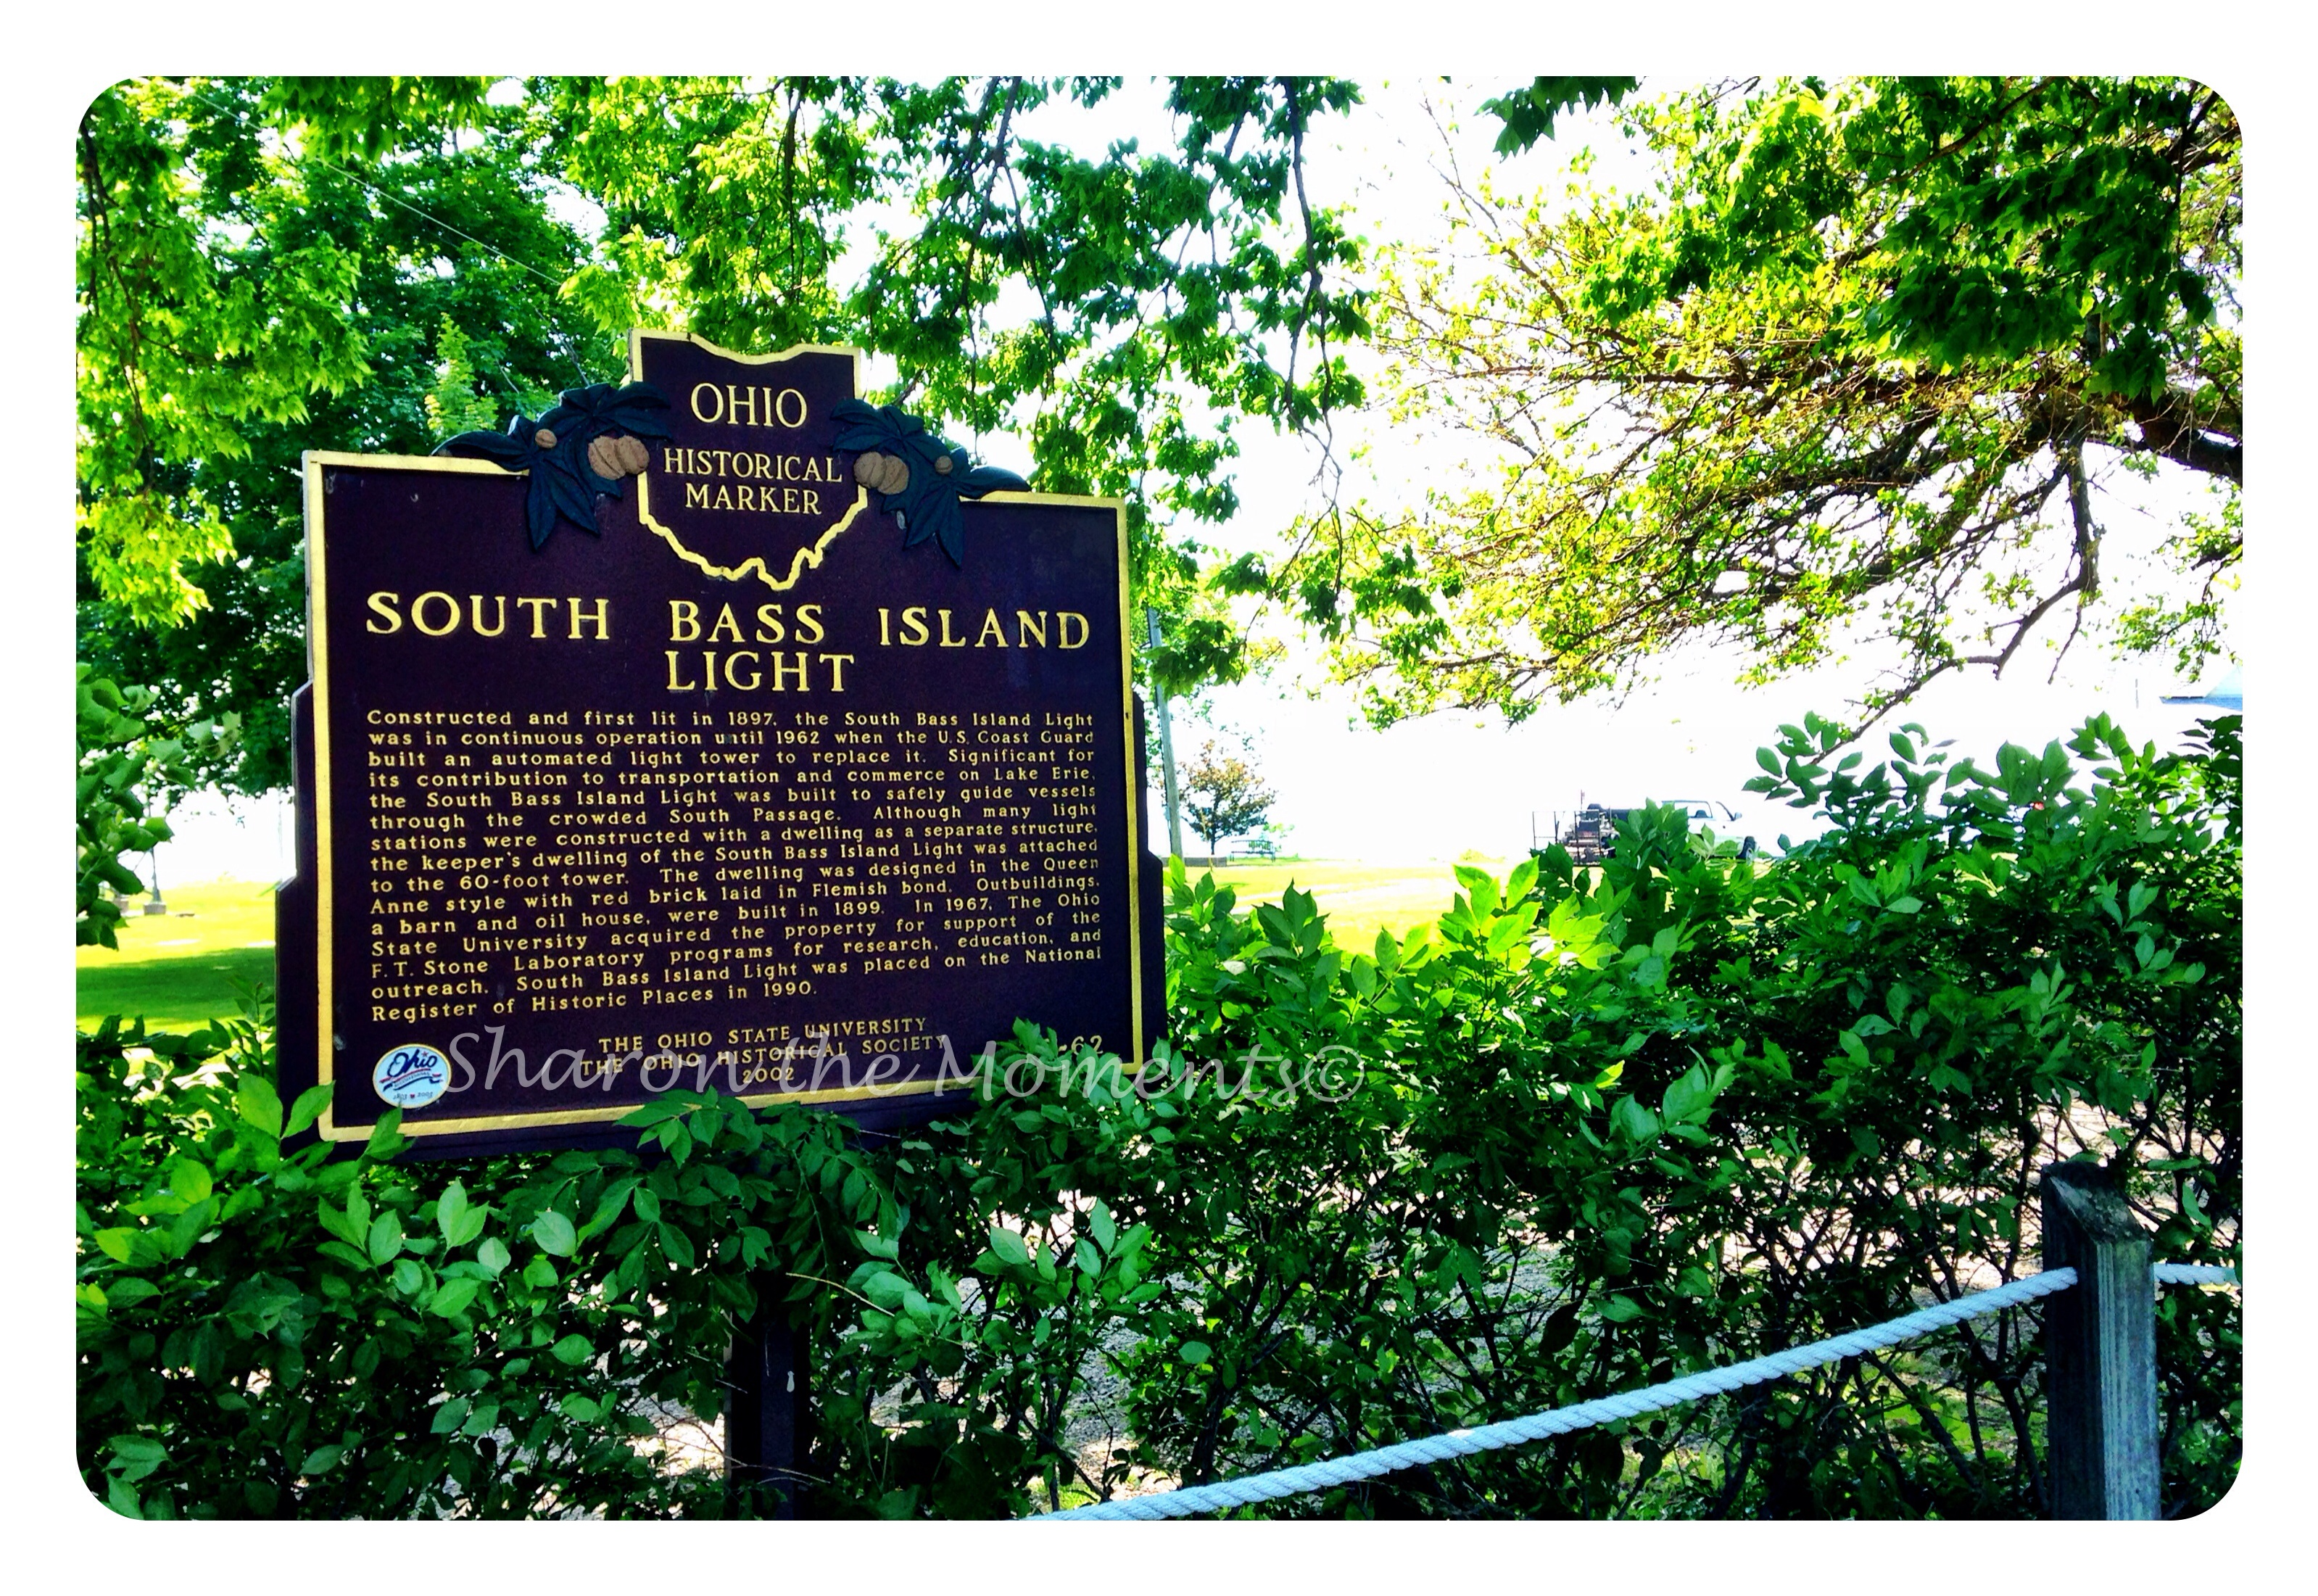 Remarkable Ohio … Ohio Historical Marker #9-62 South Bass Island Light